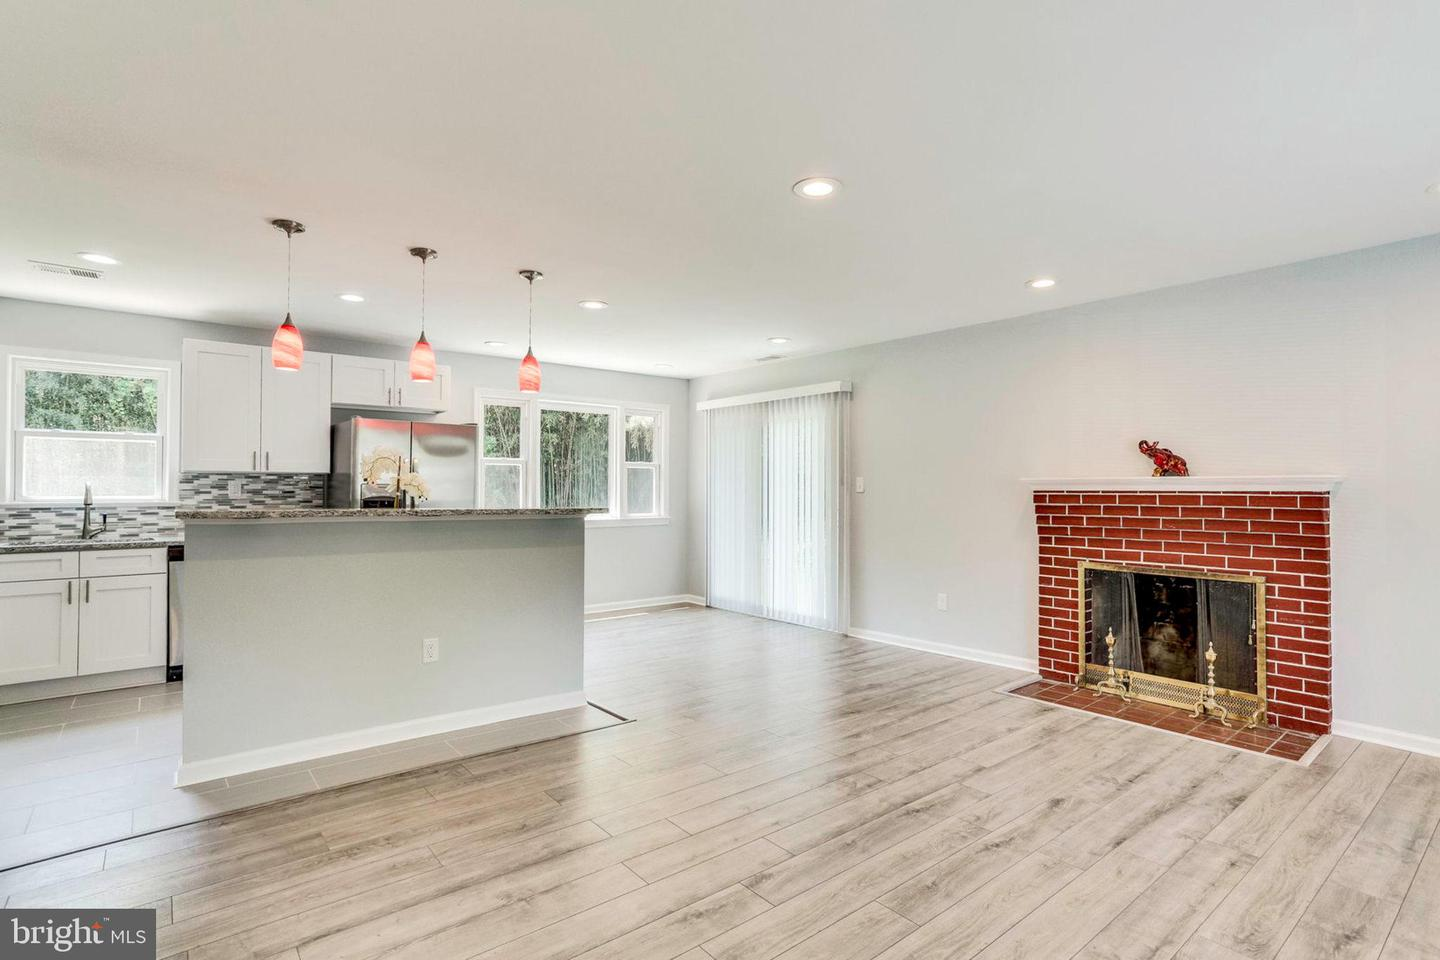 Additional photo for property listing at 4611 Eaton Dr Suitland, Maryland 20746 United States